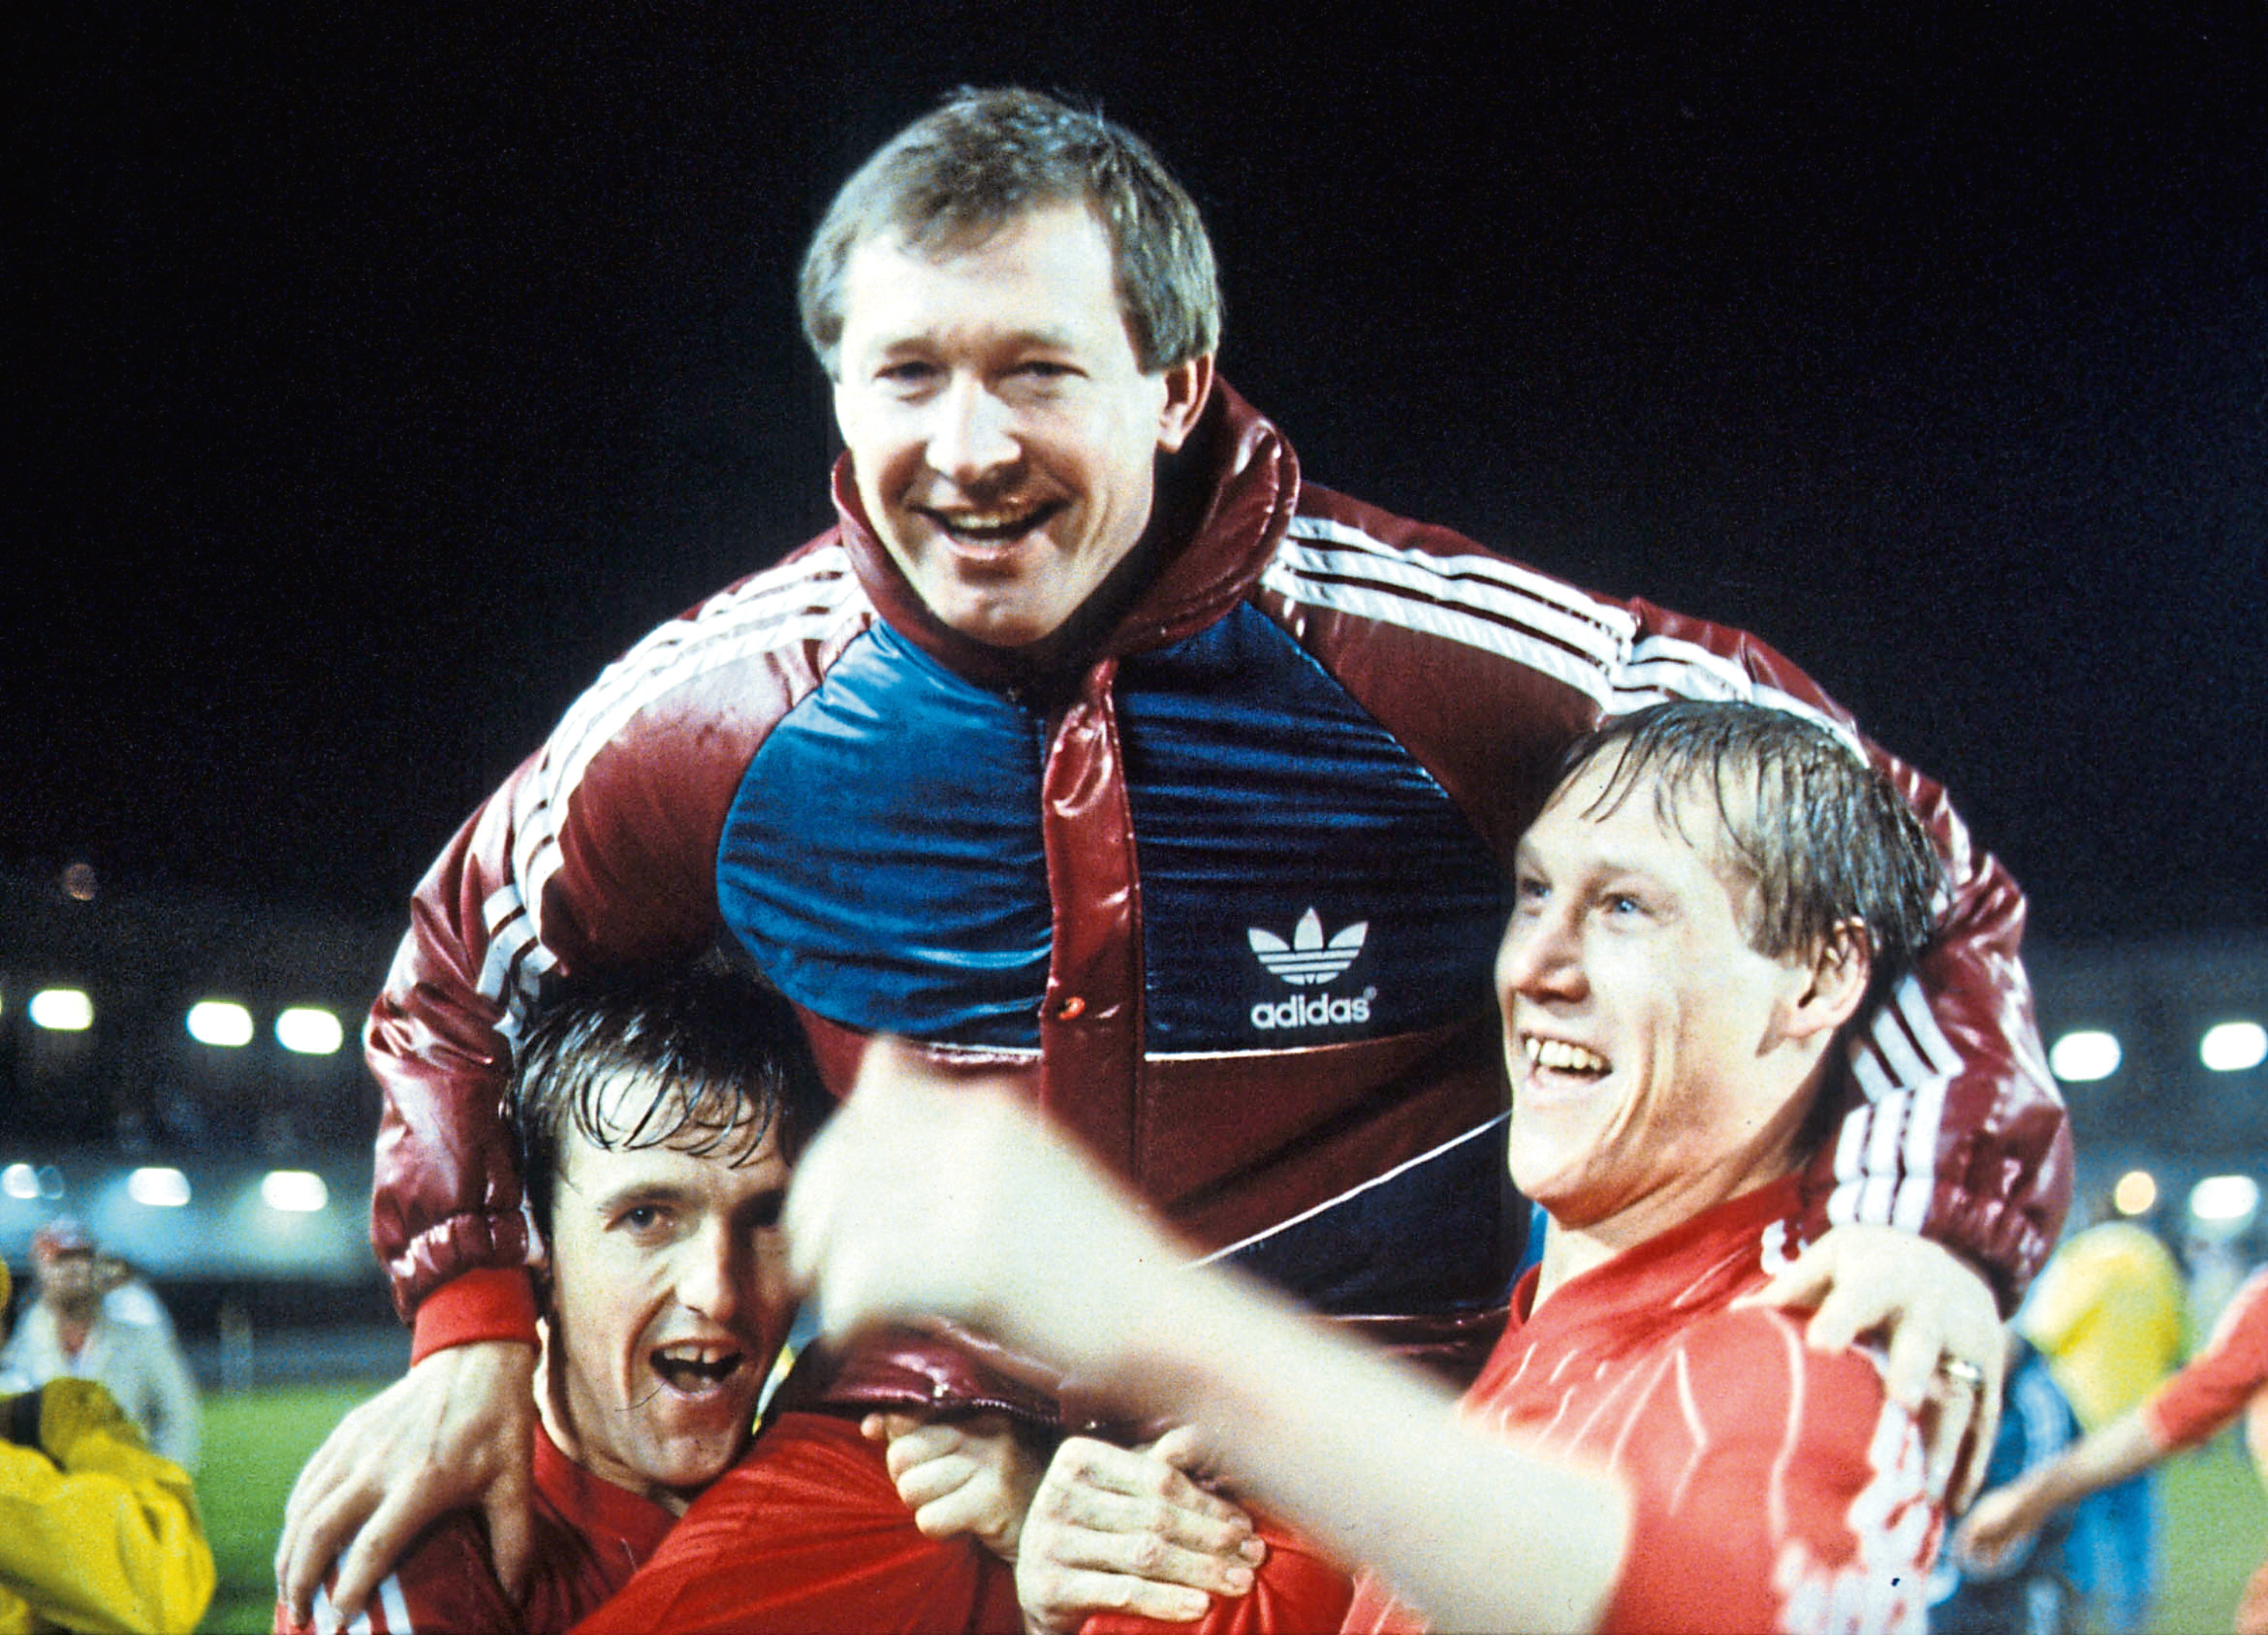 Alex Ferguson is held high by his players after the Dons beat Real Madrid 2-1 in the European Cup Winners Cup Final